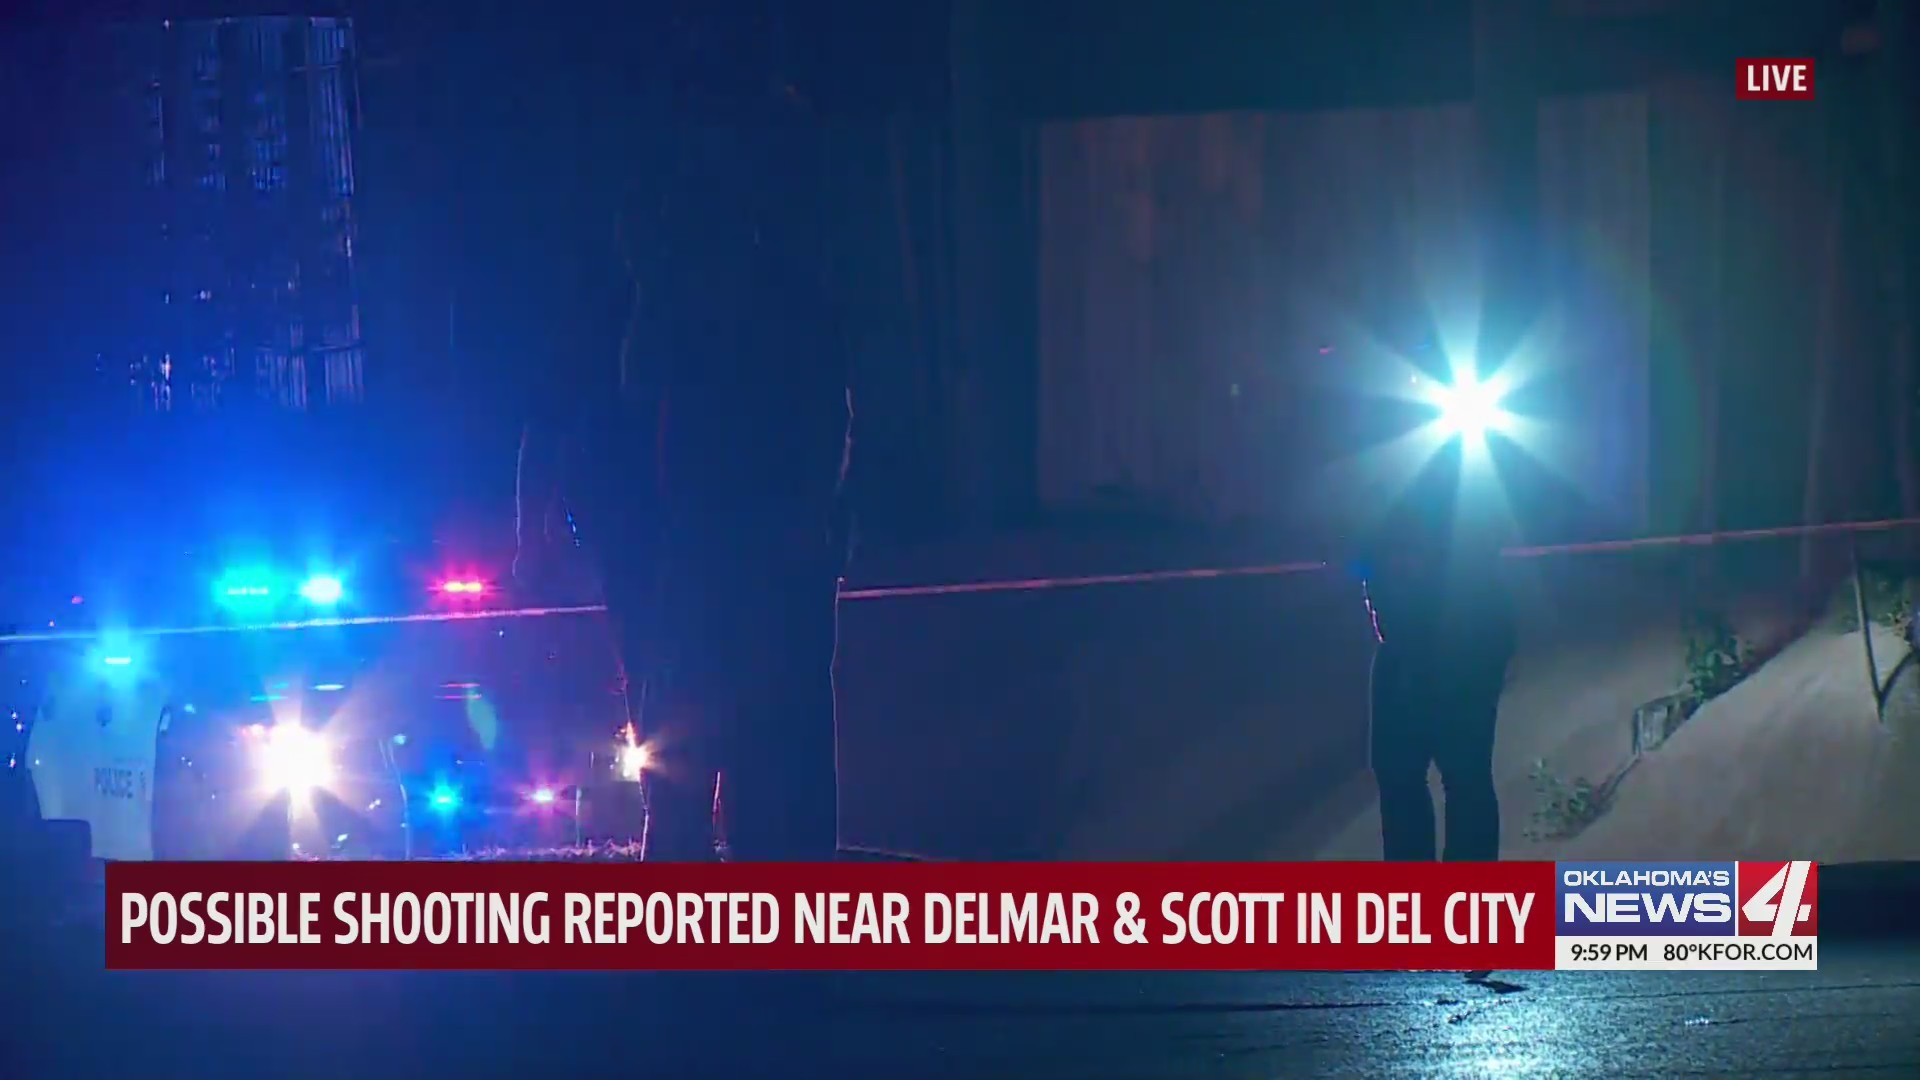 Del City police investigating a reported shooting.